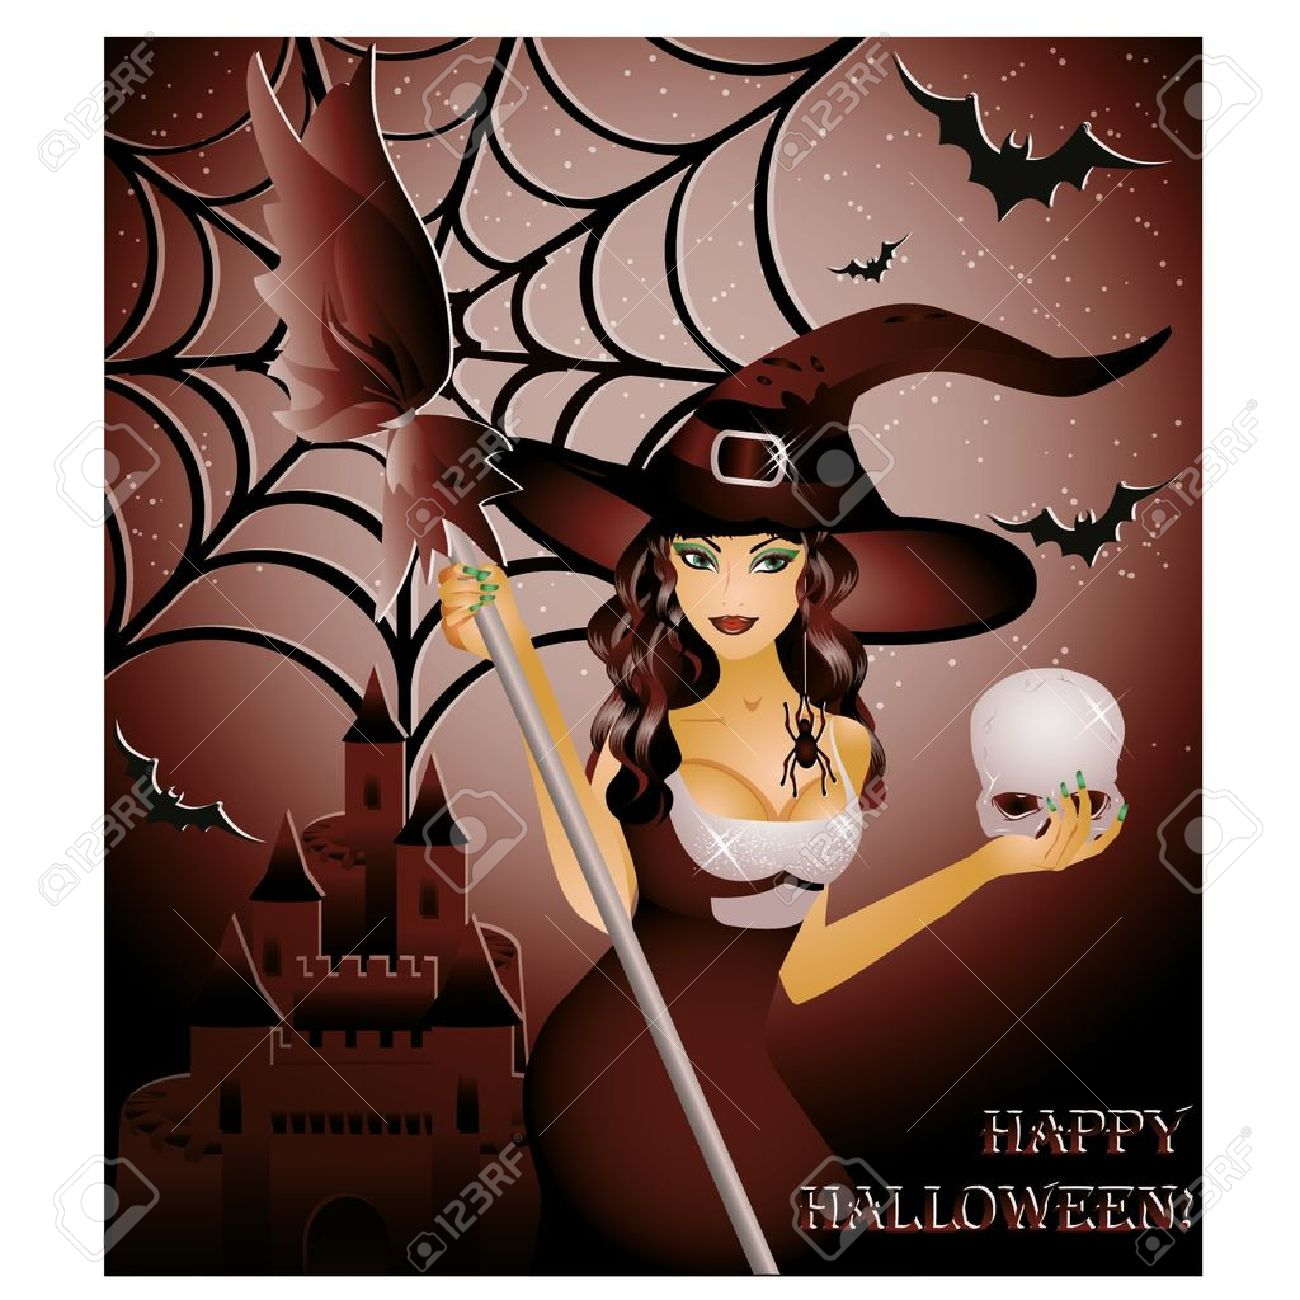 Happy halloween card, sexy witch and skull ,  illustration Stock Vector - 14991593